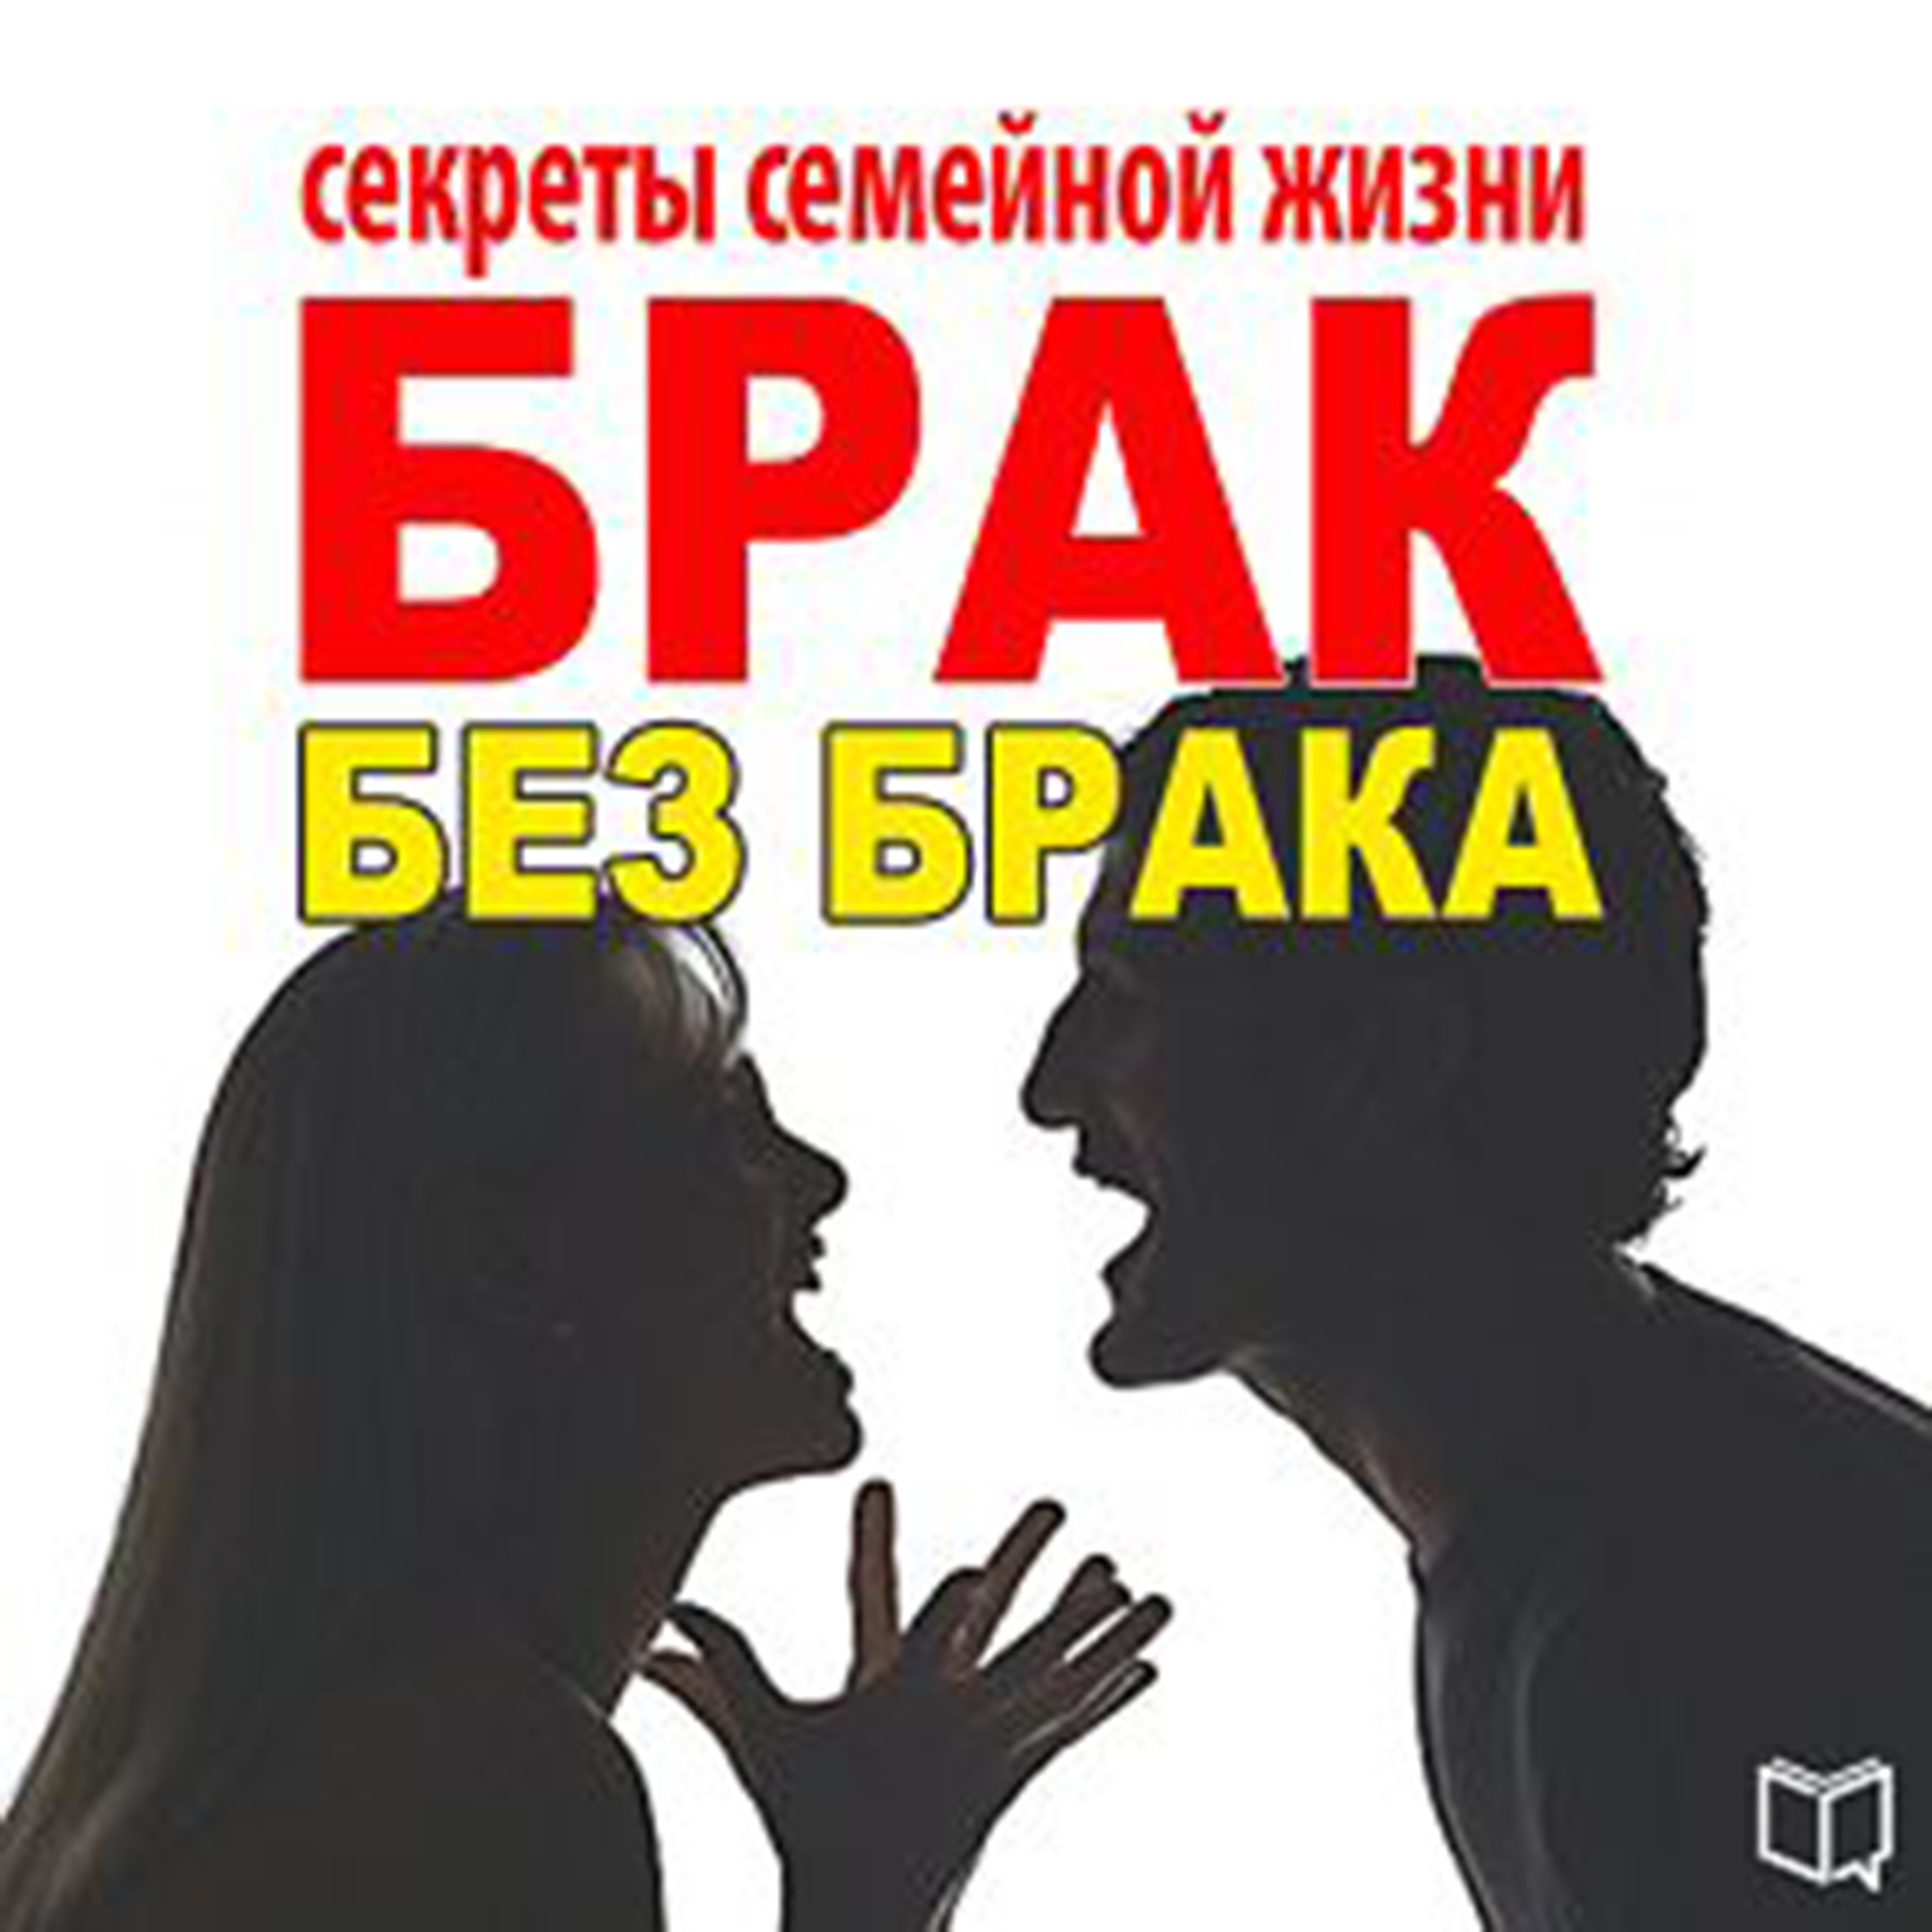 Printable The Secrets of Happy Marriage [Russian Edition] Audiobook Cover Art